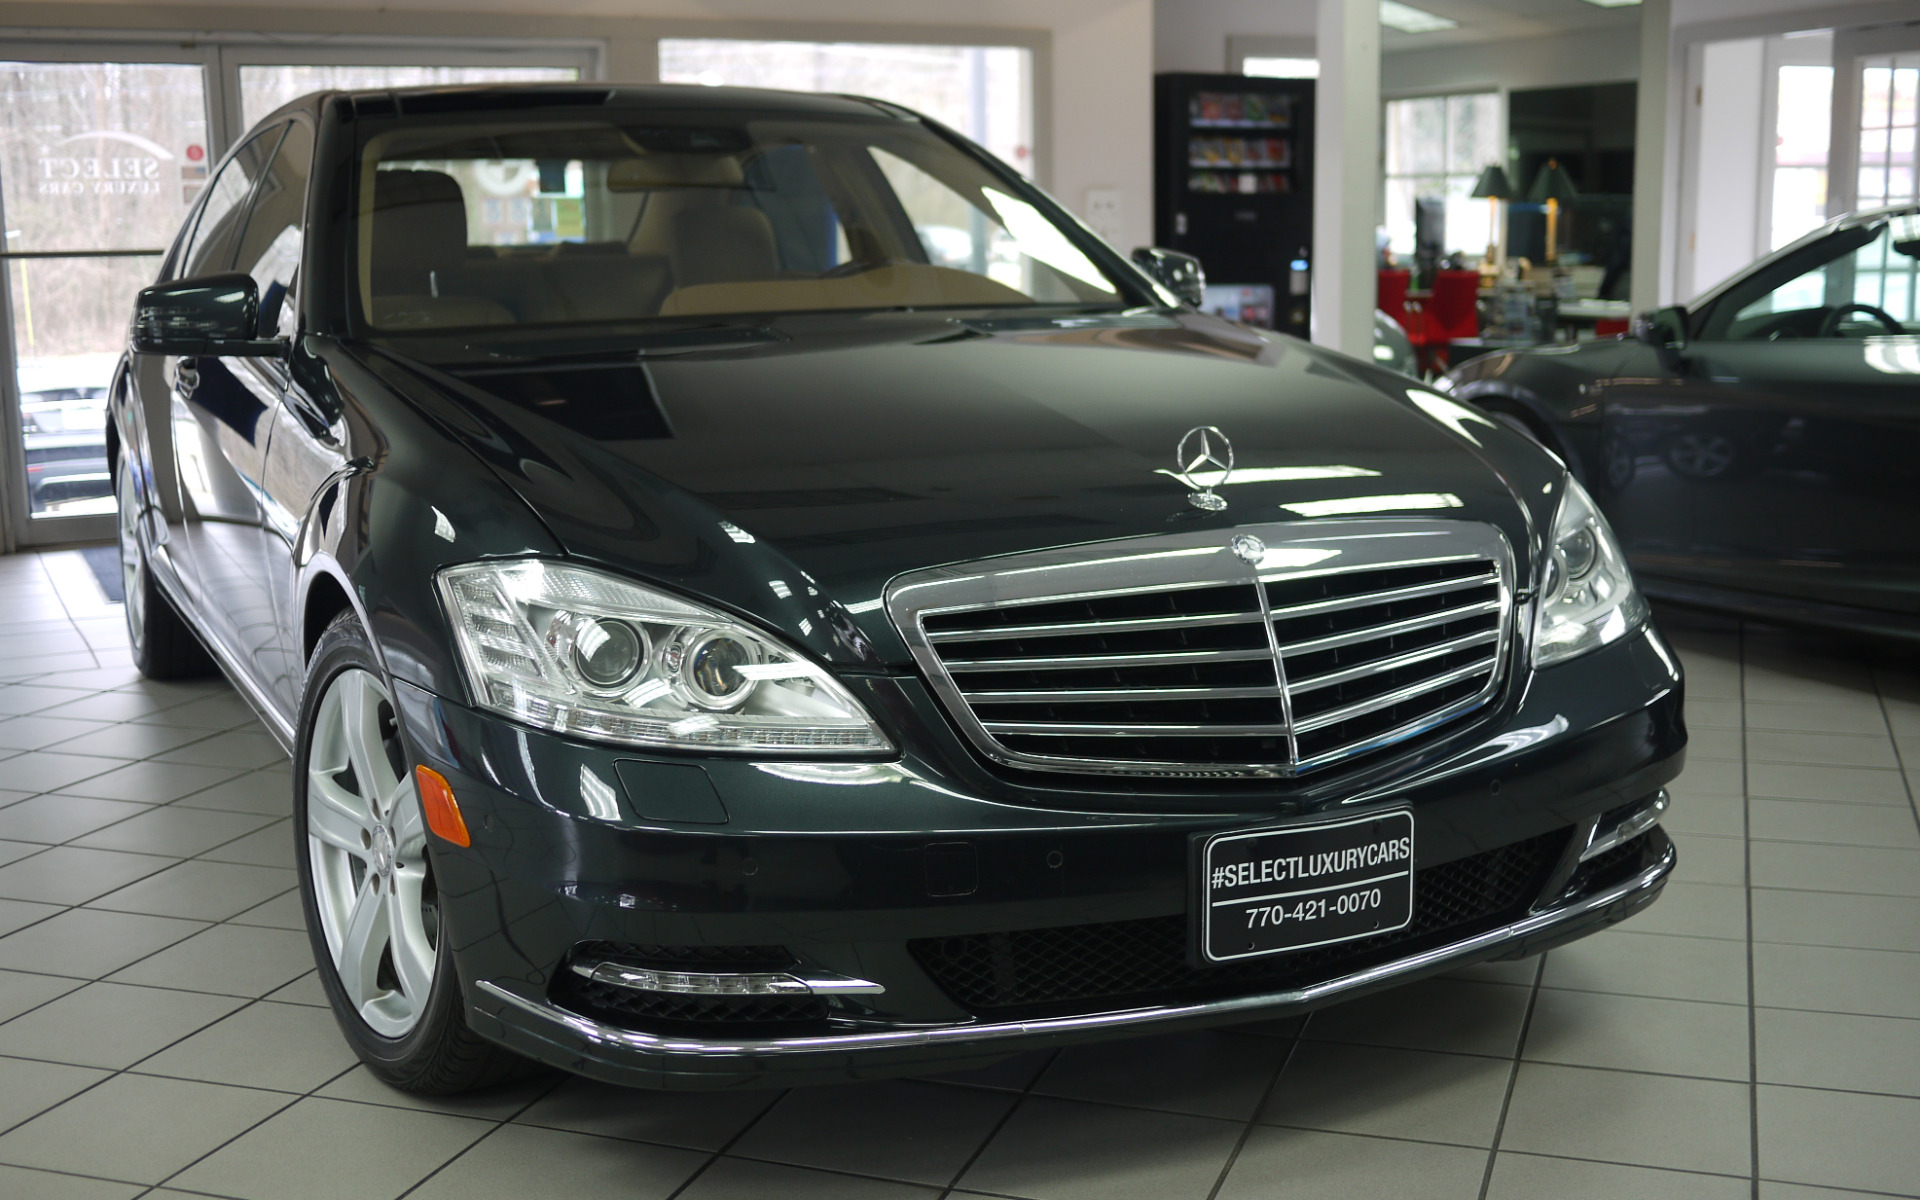 used 2011 mercedes benz s class s550 marietta ga. Black Bedroom Furniture Sets. Home Design Ideas